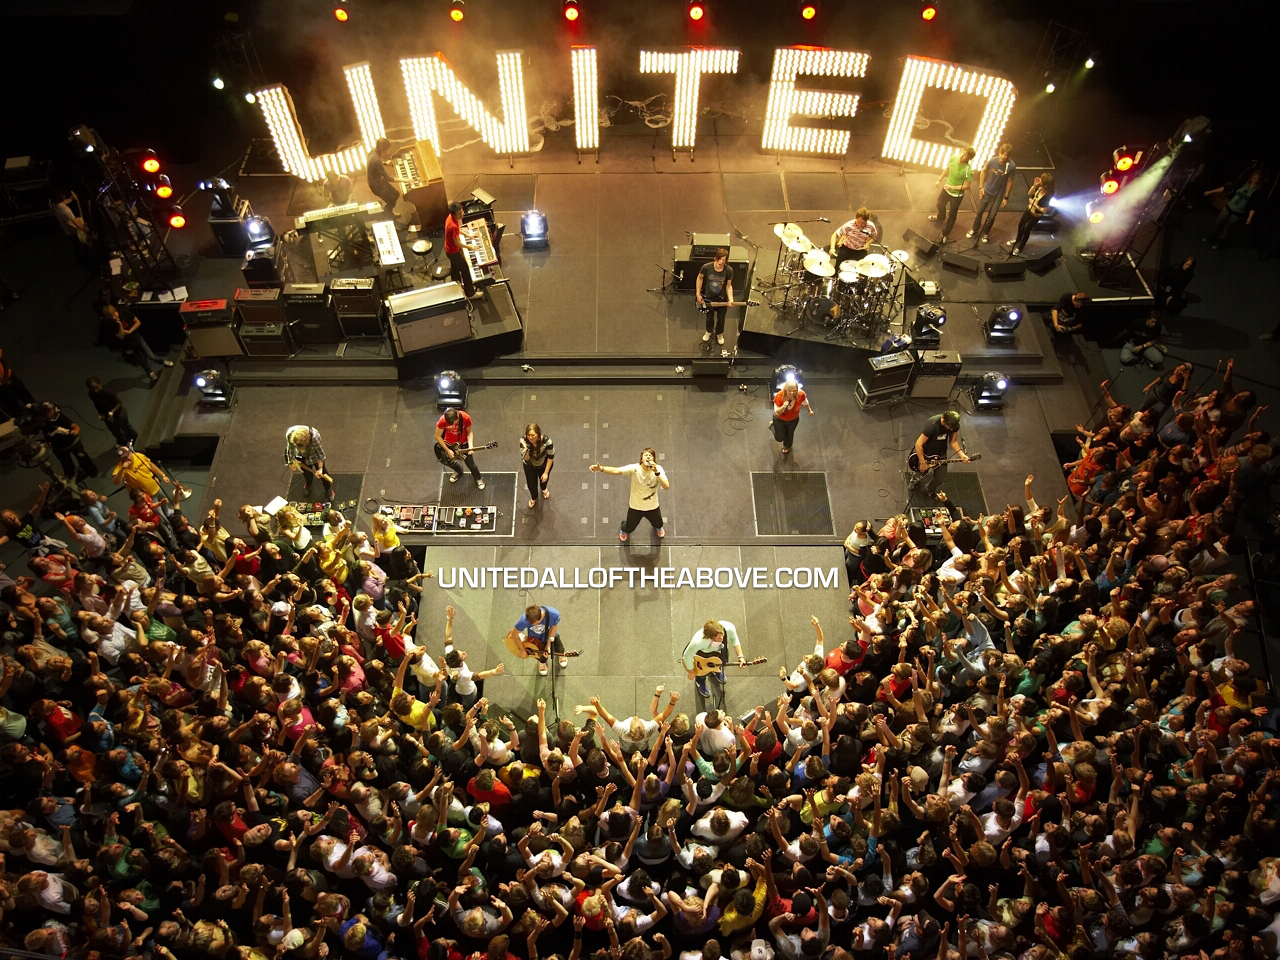 Hillsong United Show Wallpaper Christian Wallpapers And Backgrounds